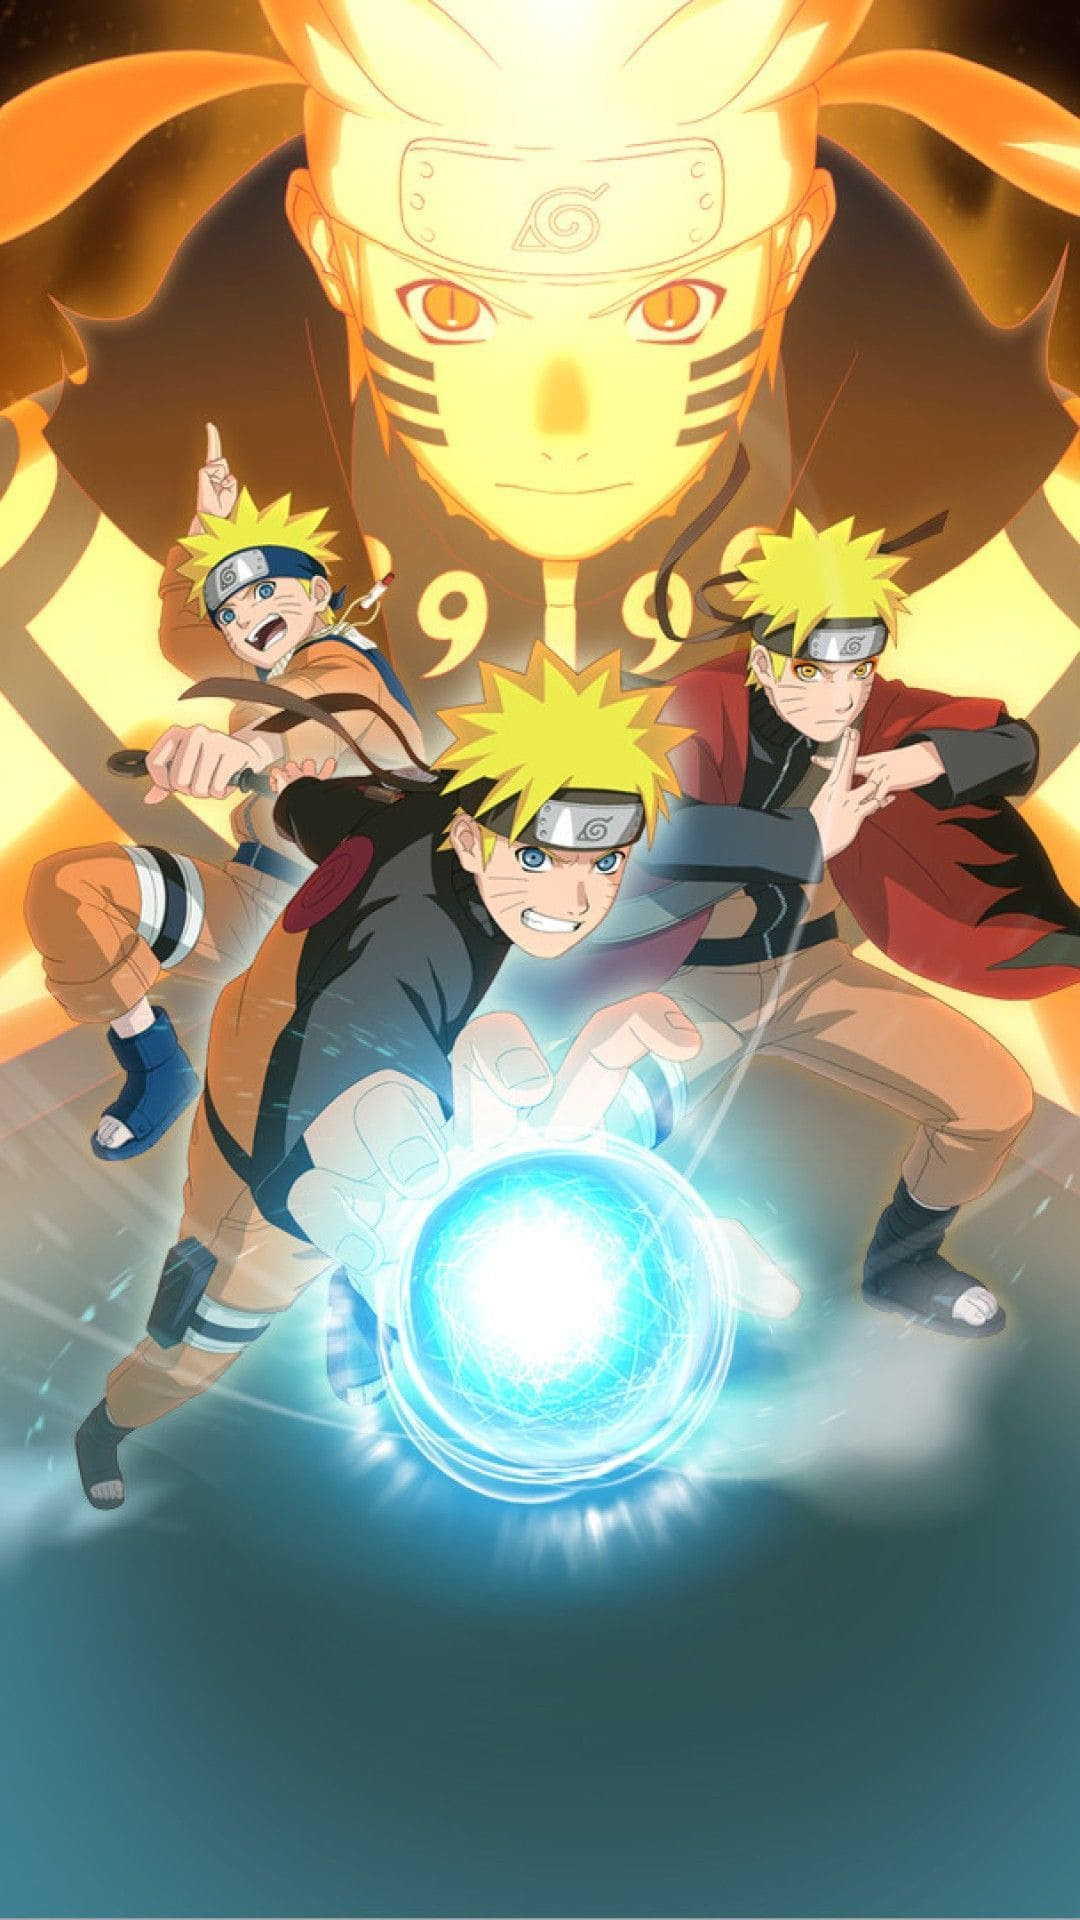 Naruto Hd Wallpapers Getty Wallpapers